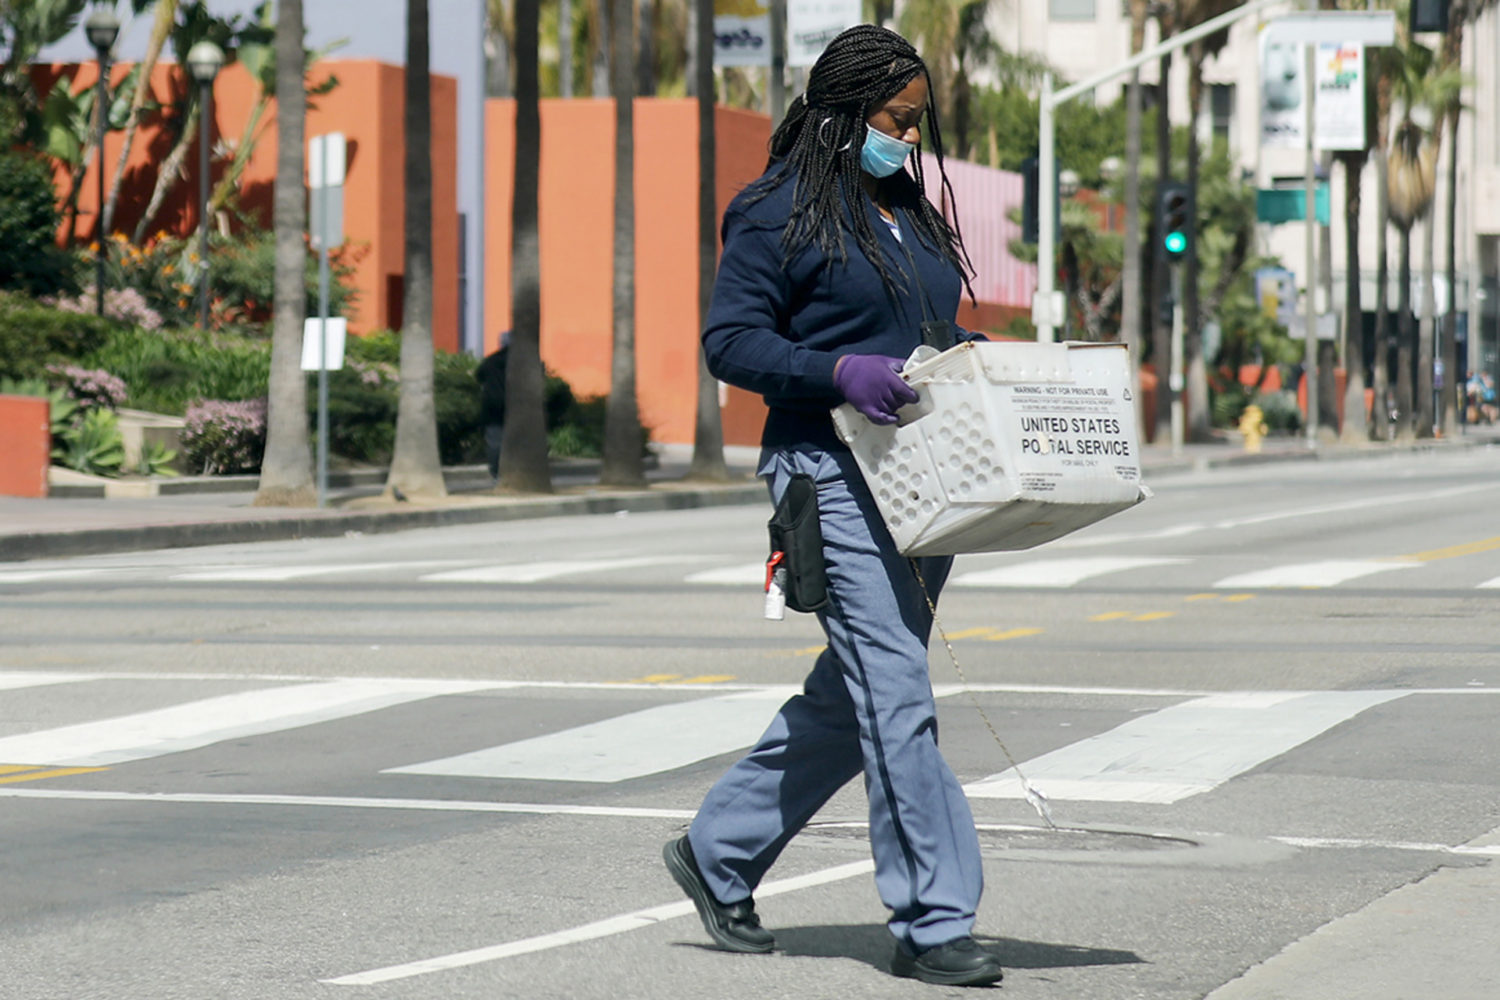 U.S. Postal Service worker in Los Angeles, California